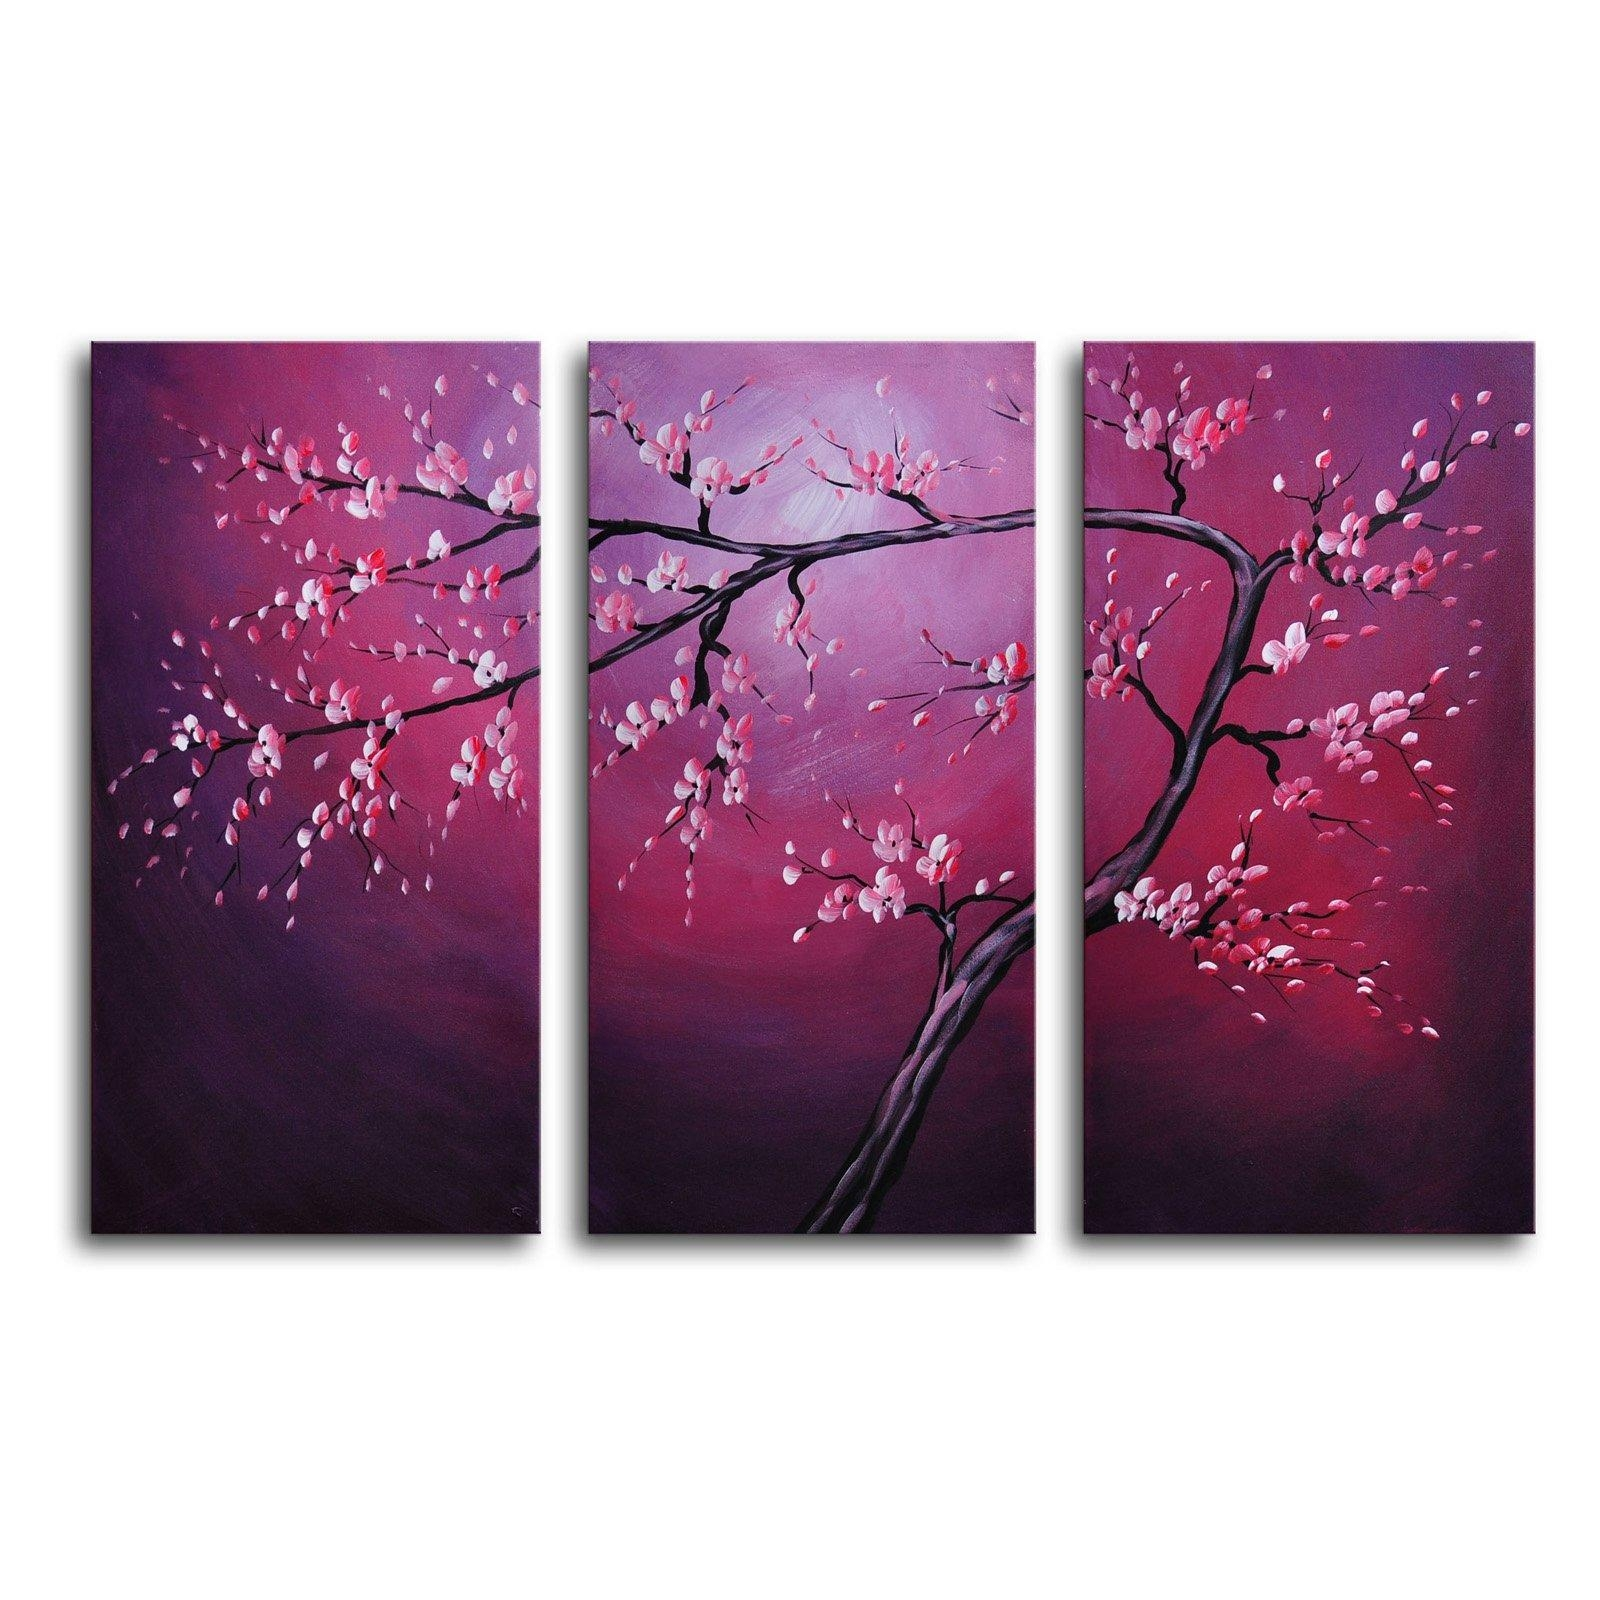 Pink On Crimson 3 Piece Canvas Wall Art – 36W X 24H In (View 12 of 20)